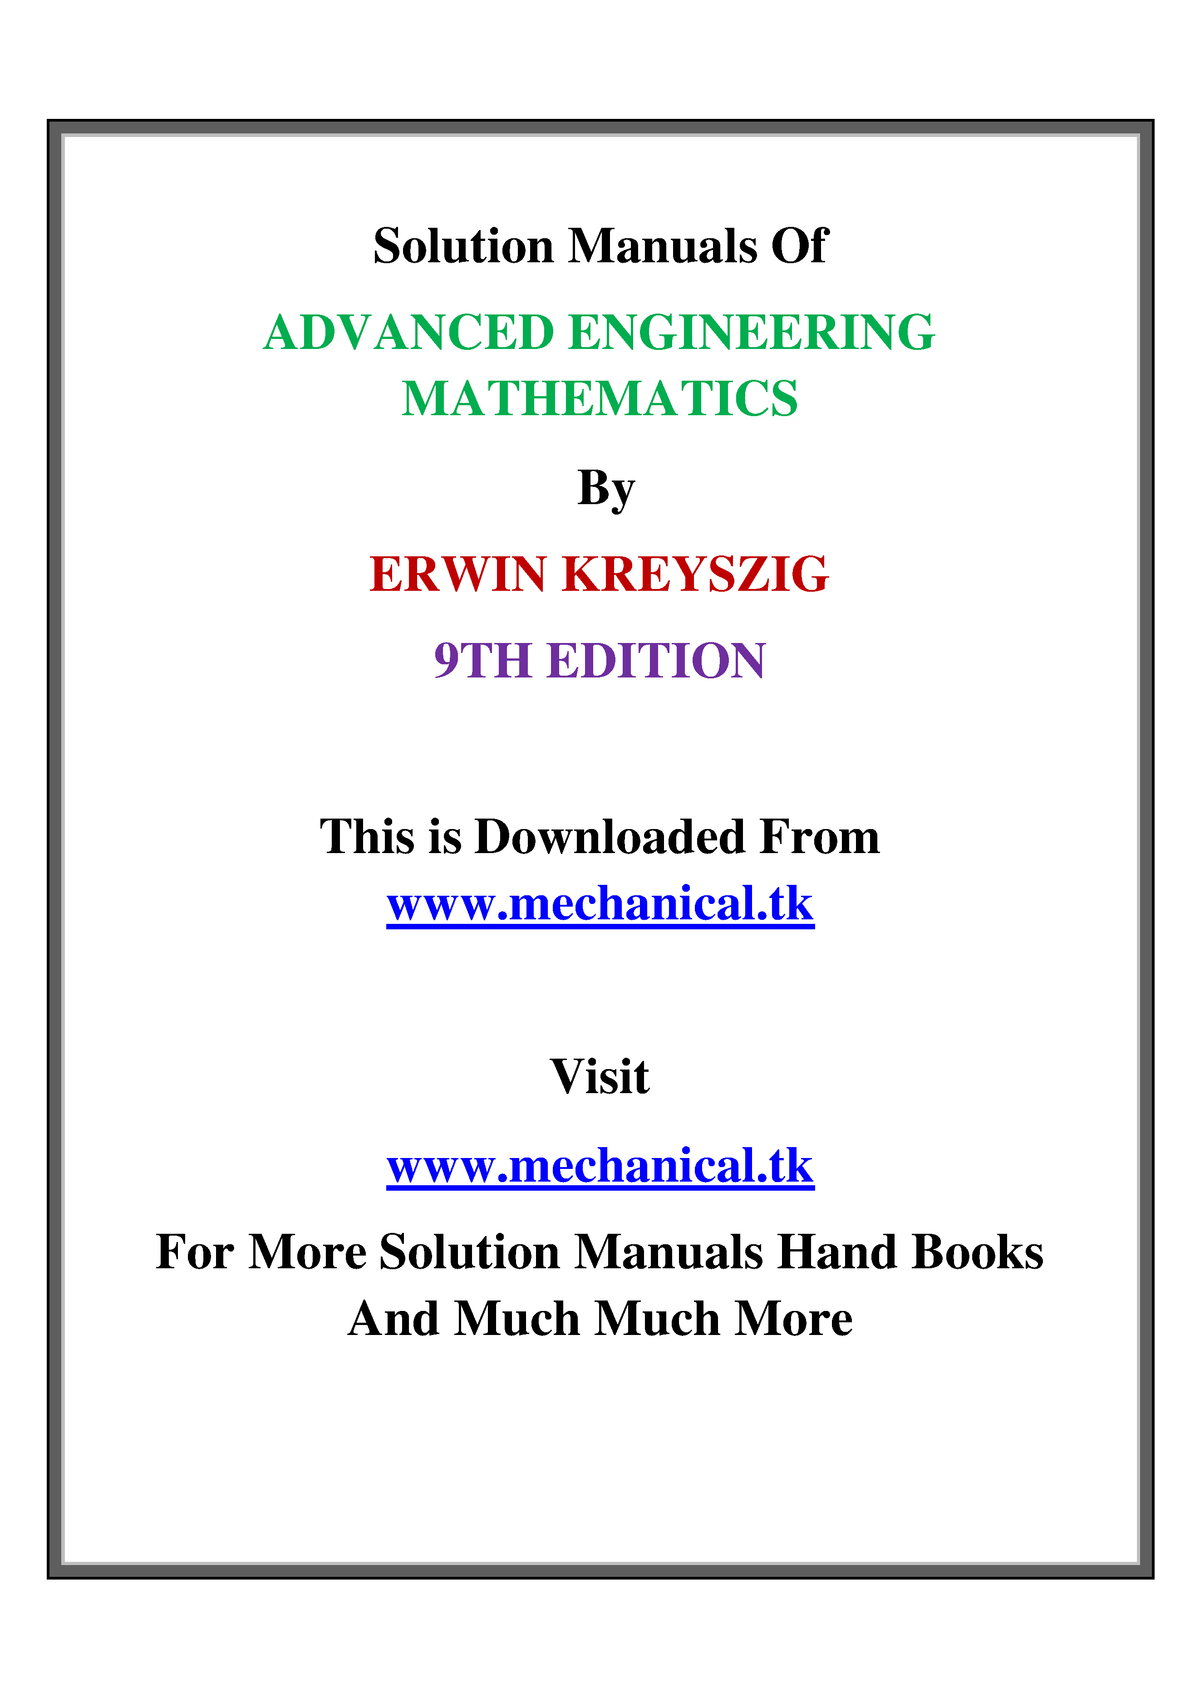 Solution manual of advanced engineering mathematics by erwin